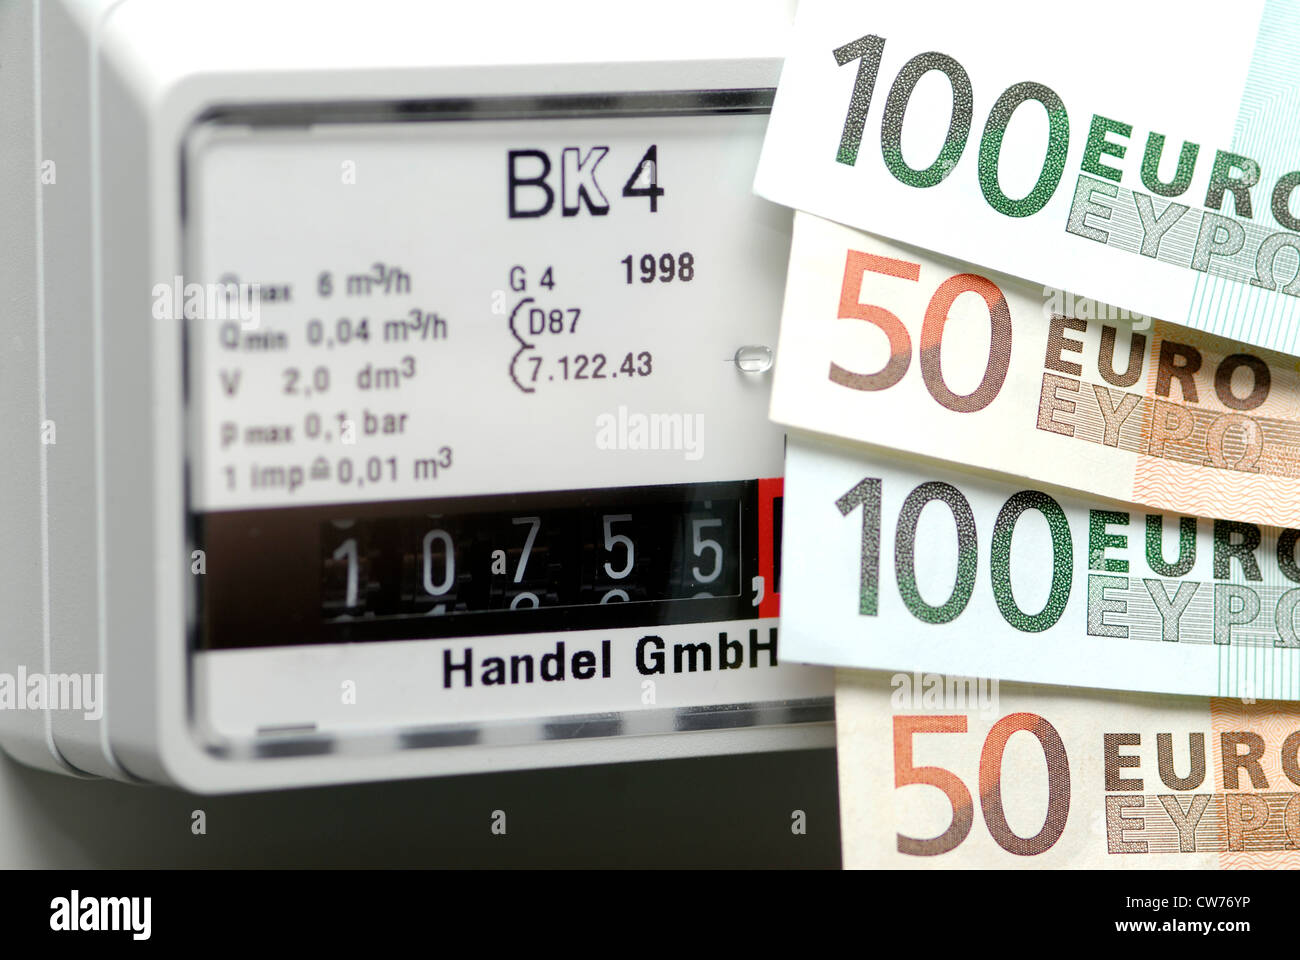 high gas prise, euro banknotes and gas meter - Stock Image